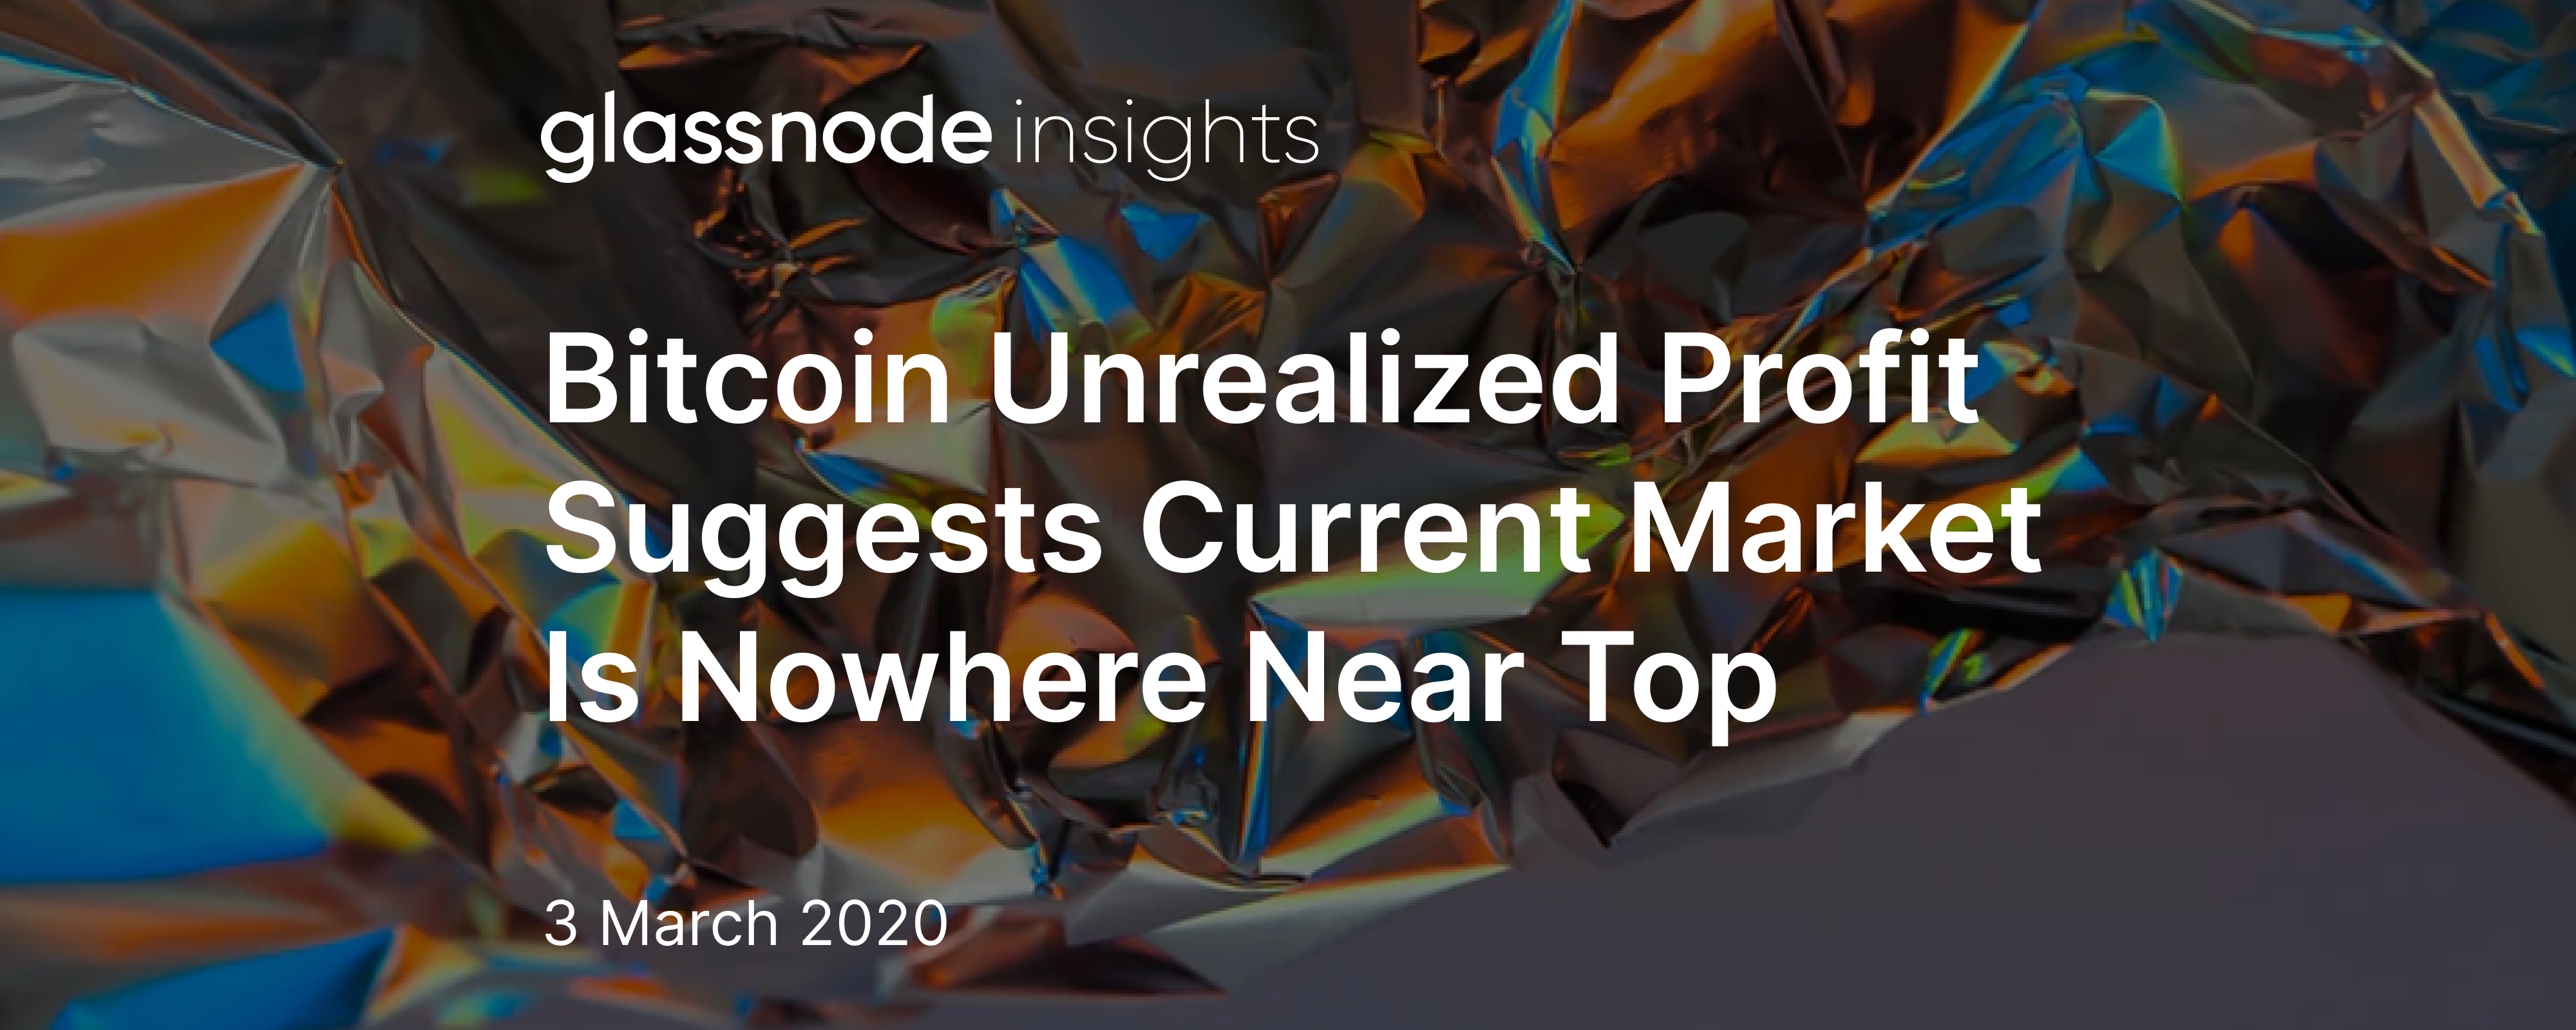 Bitcoin Unrealized Profit Suggests Current Market Is Nowhere Near Top